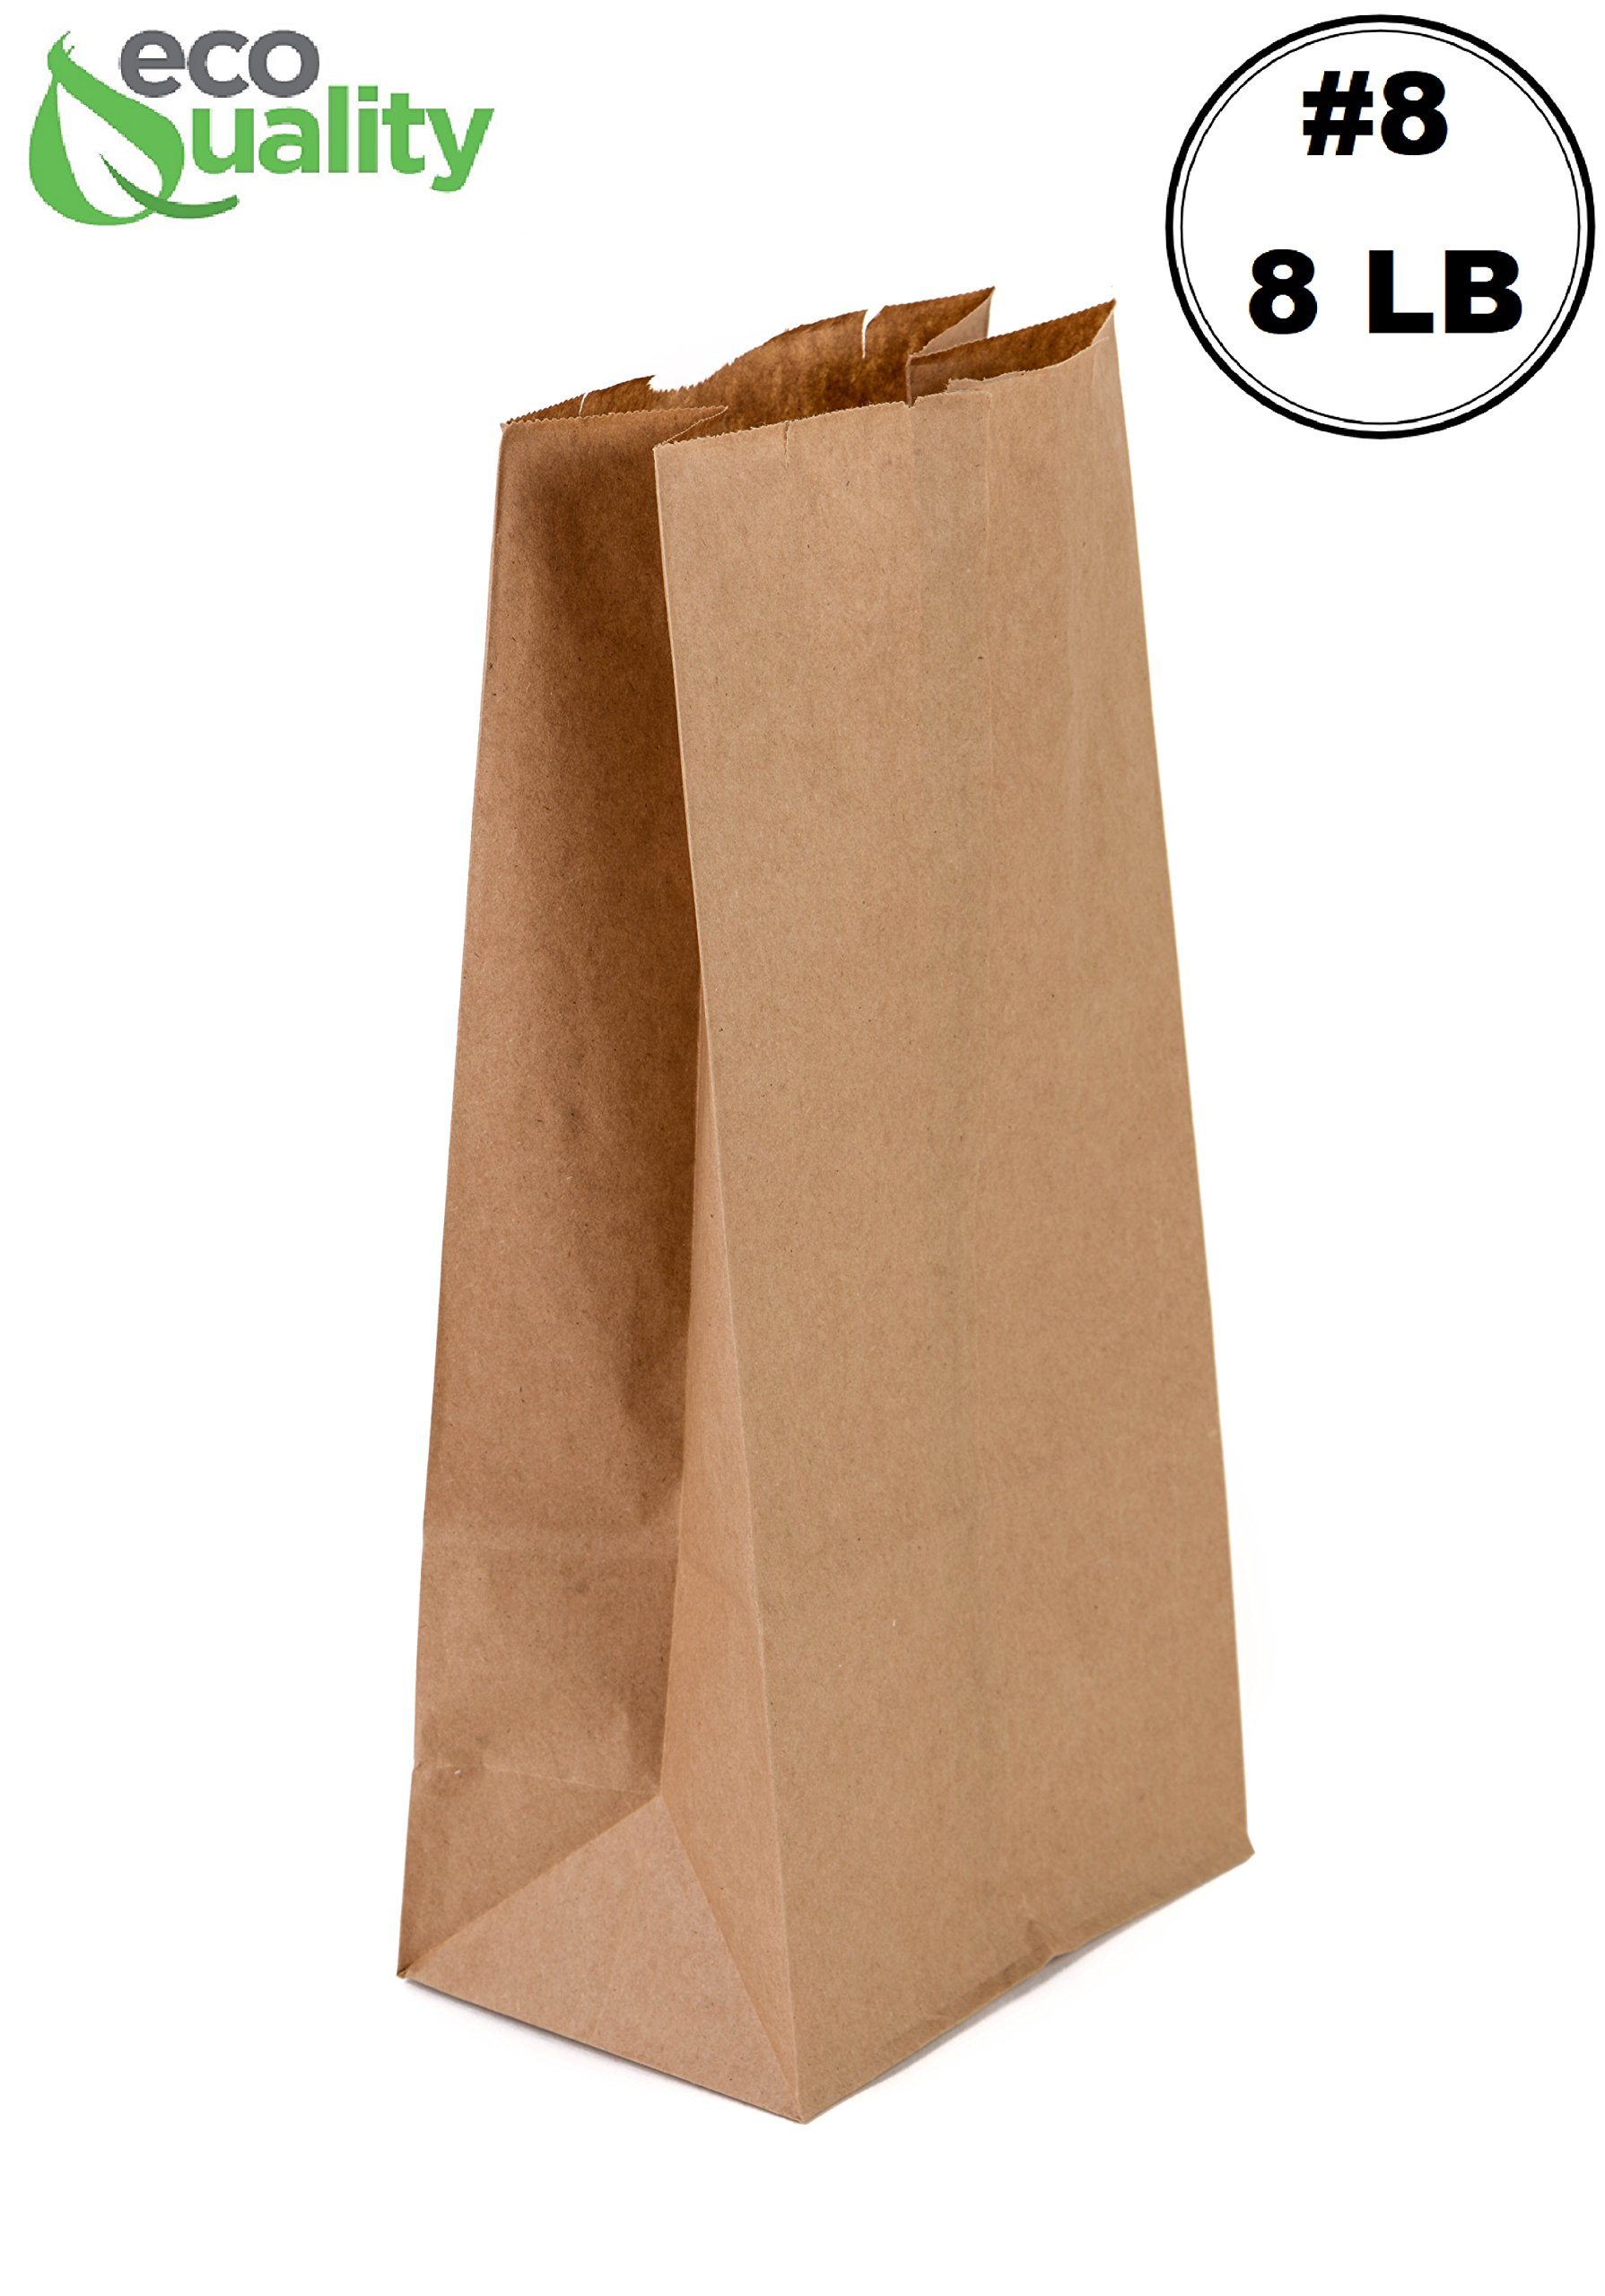 EcoQuality 500 Brown Kraft Paper Bag (8 lb) Small - Paper Lunch Bags, Small Snacks, Gift Bags, Grocery, Merchandise, Party Bags (6 1/8'' x 4 1/8'' x 12 7/16'') (8 Pound Capacity)